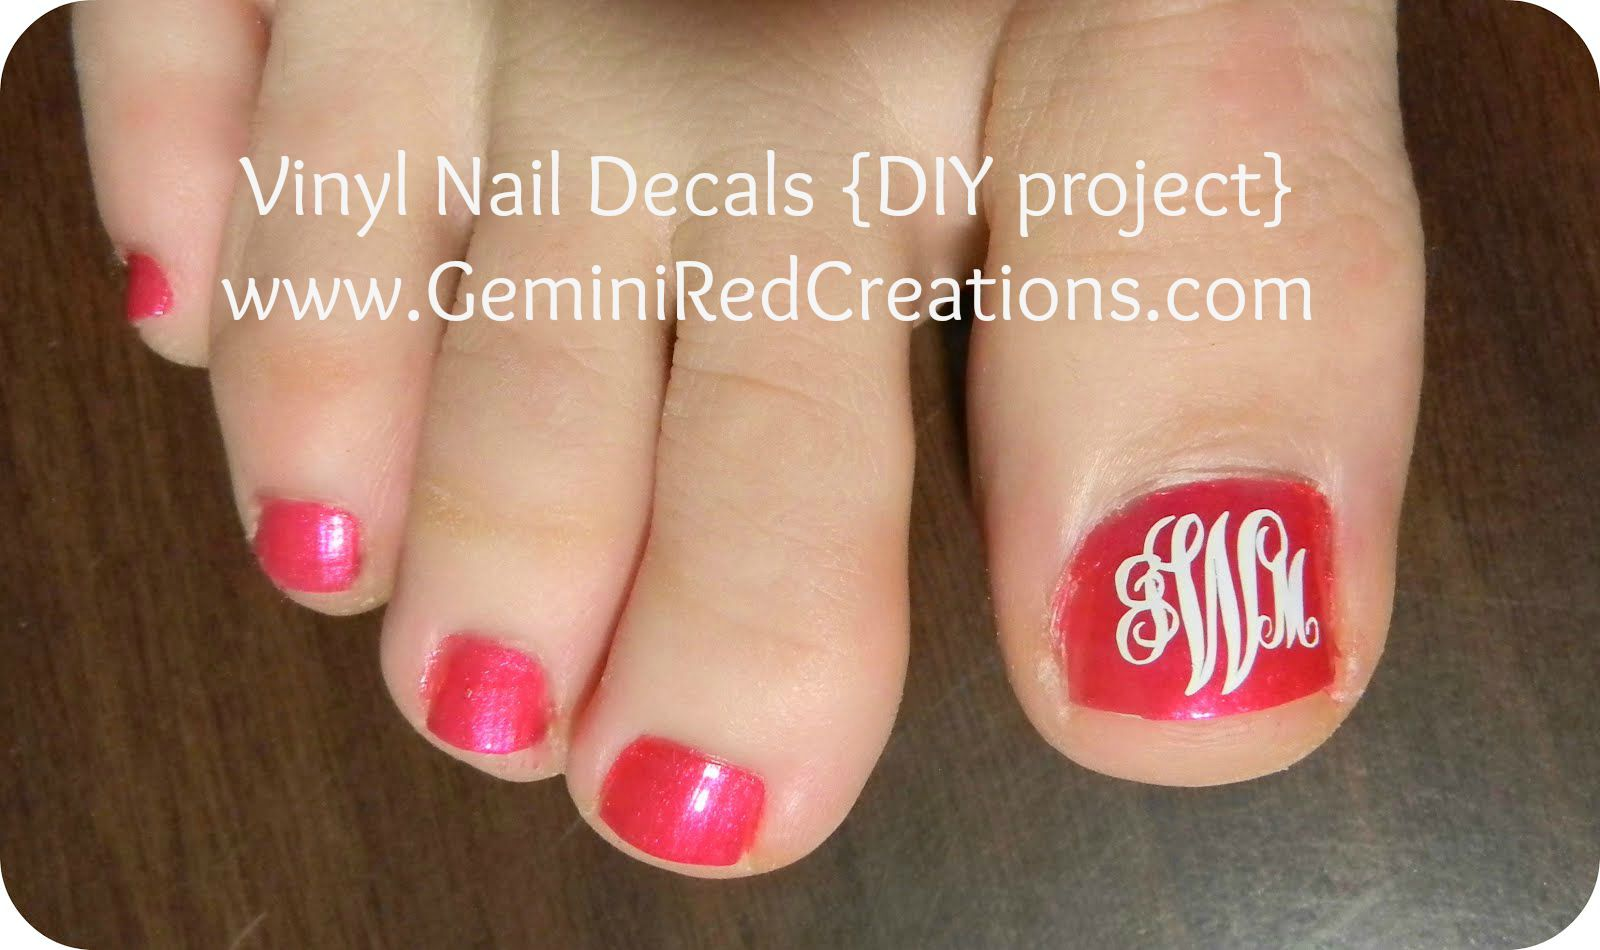 Diy archives geminired creations vinyl nail decals diy project solutioingenieria Images